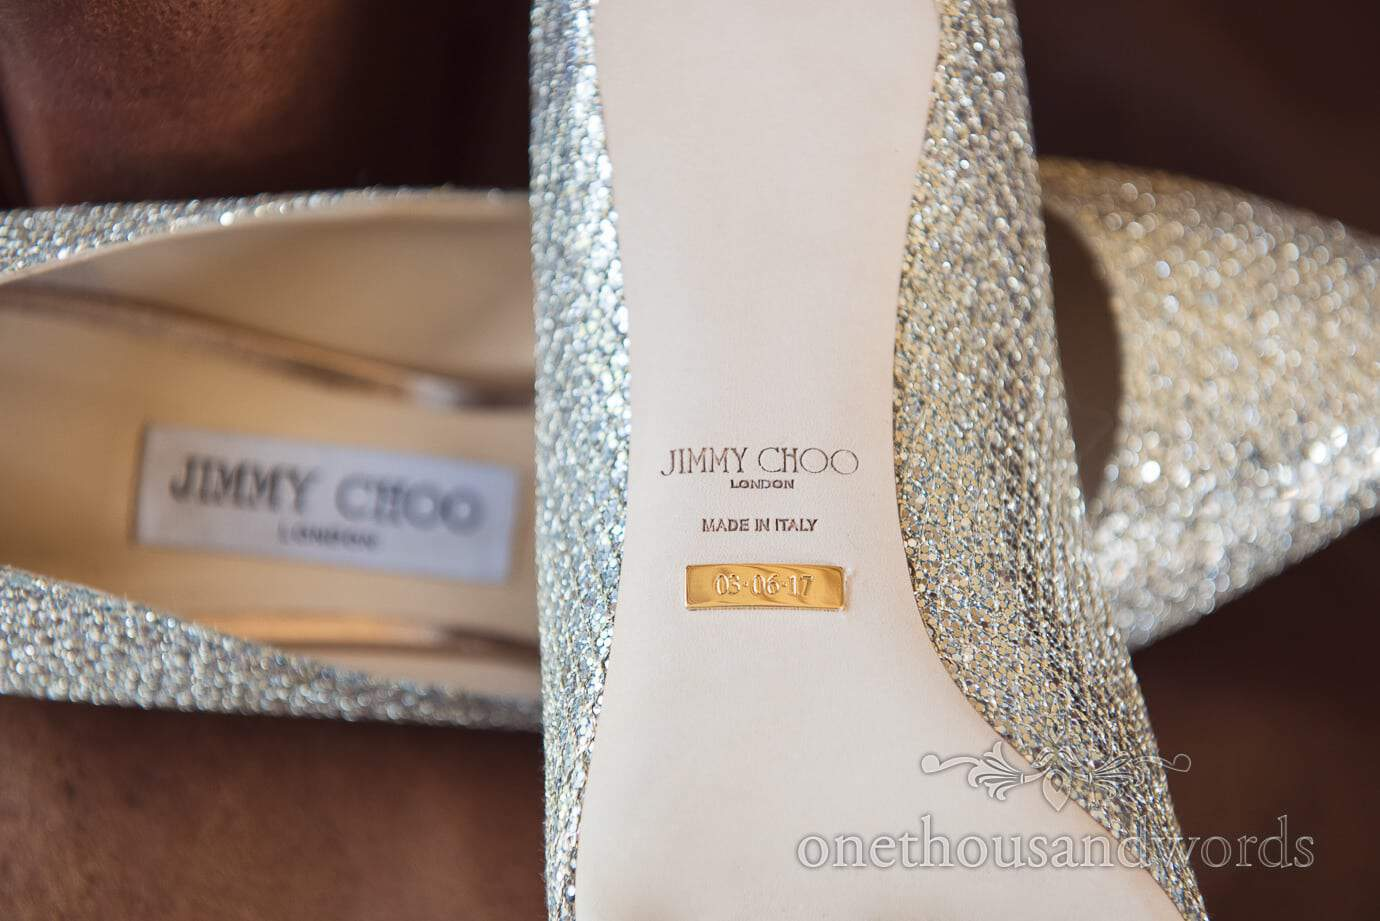 Jimmy Choo custom silver bridal wedding shoes with golden date plate